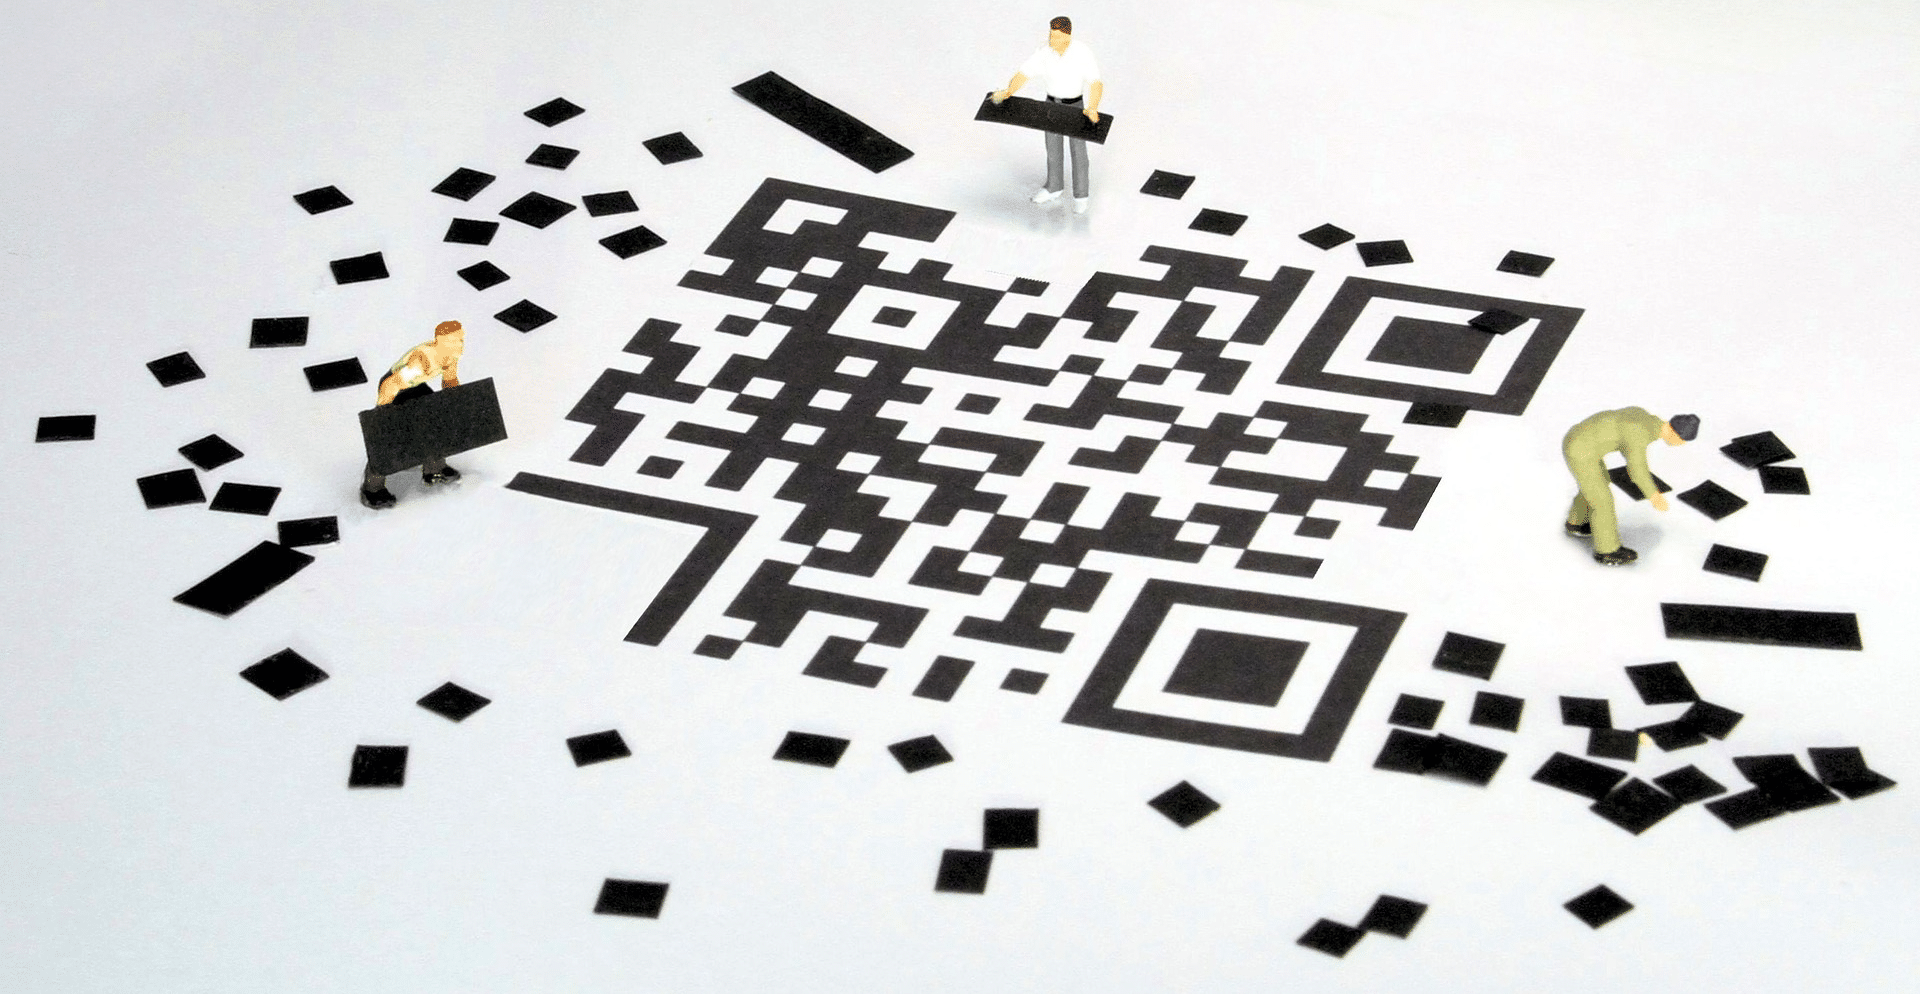 QR code generators can have a positive impact on post-purchase customer engagement and experience.